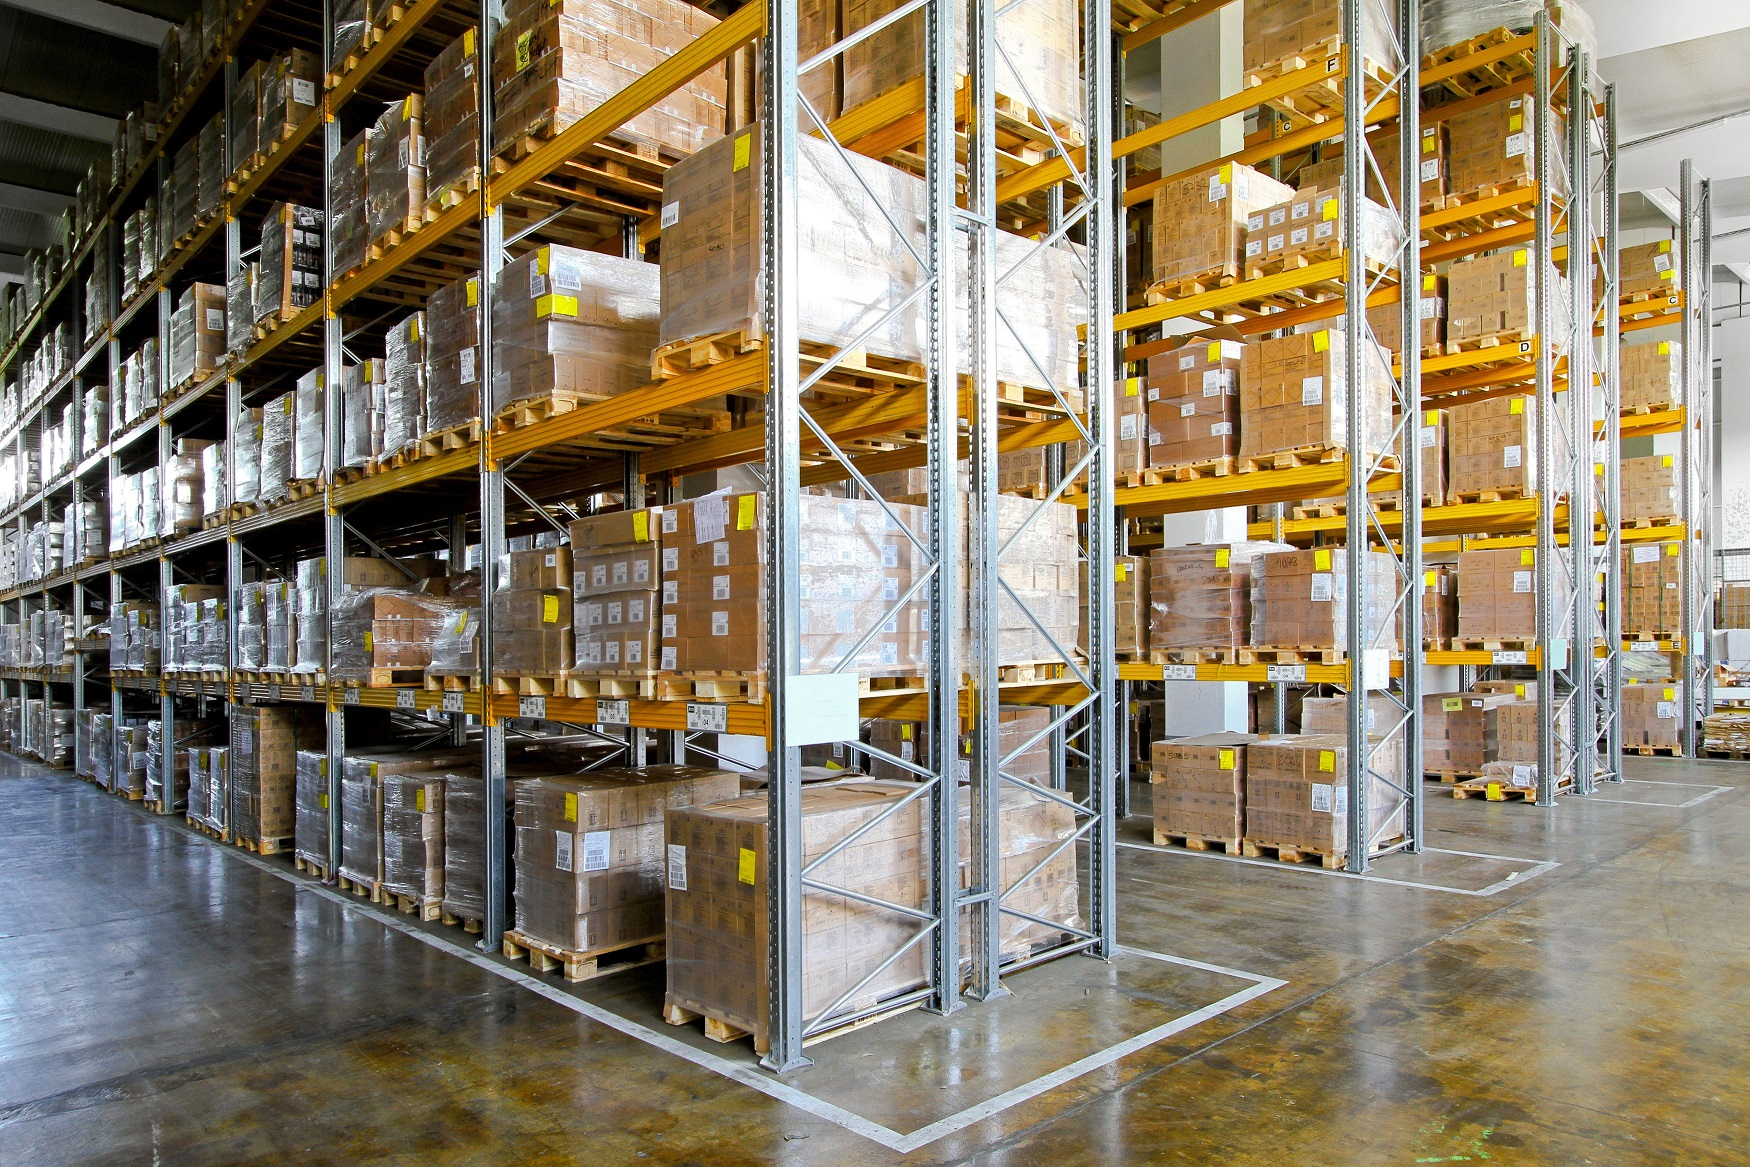 Pallet Racking Inspection – Satisfying Warehouse Racking Safety Guidelines